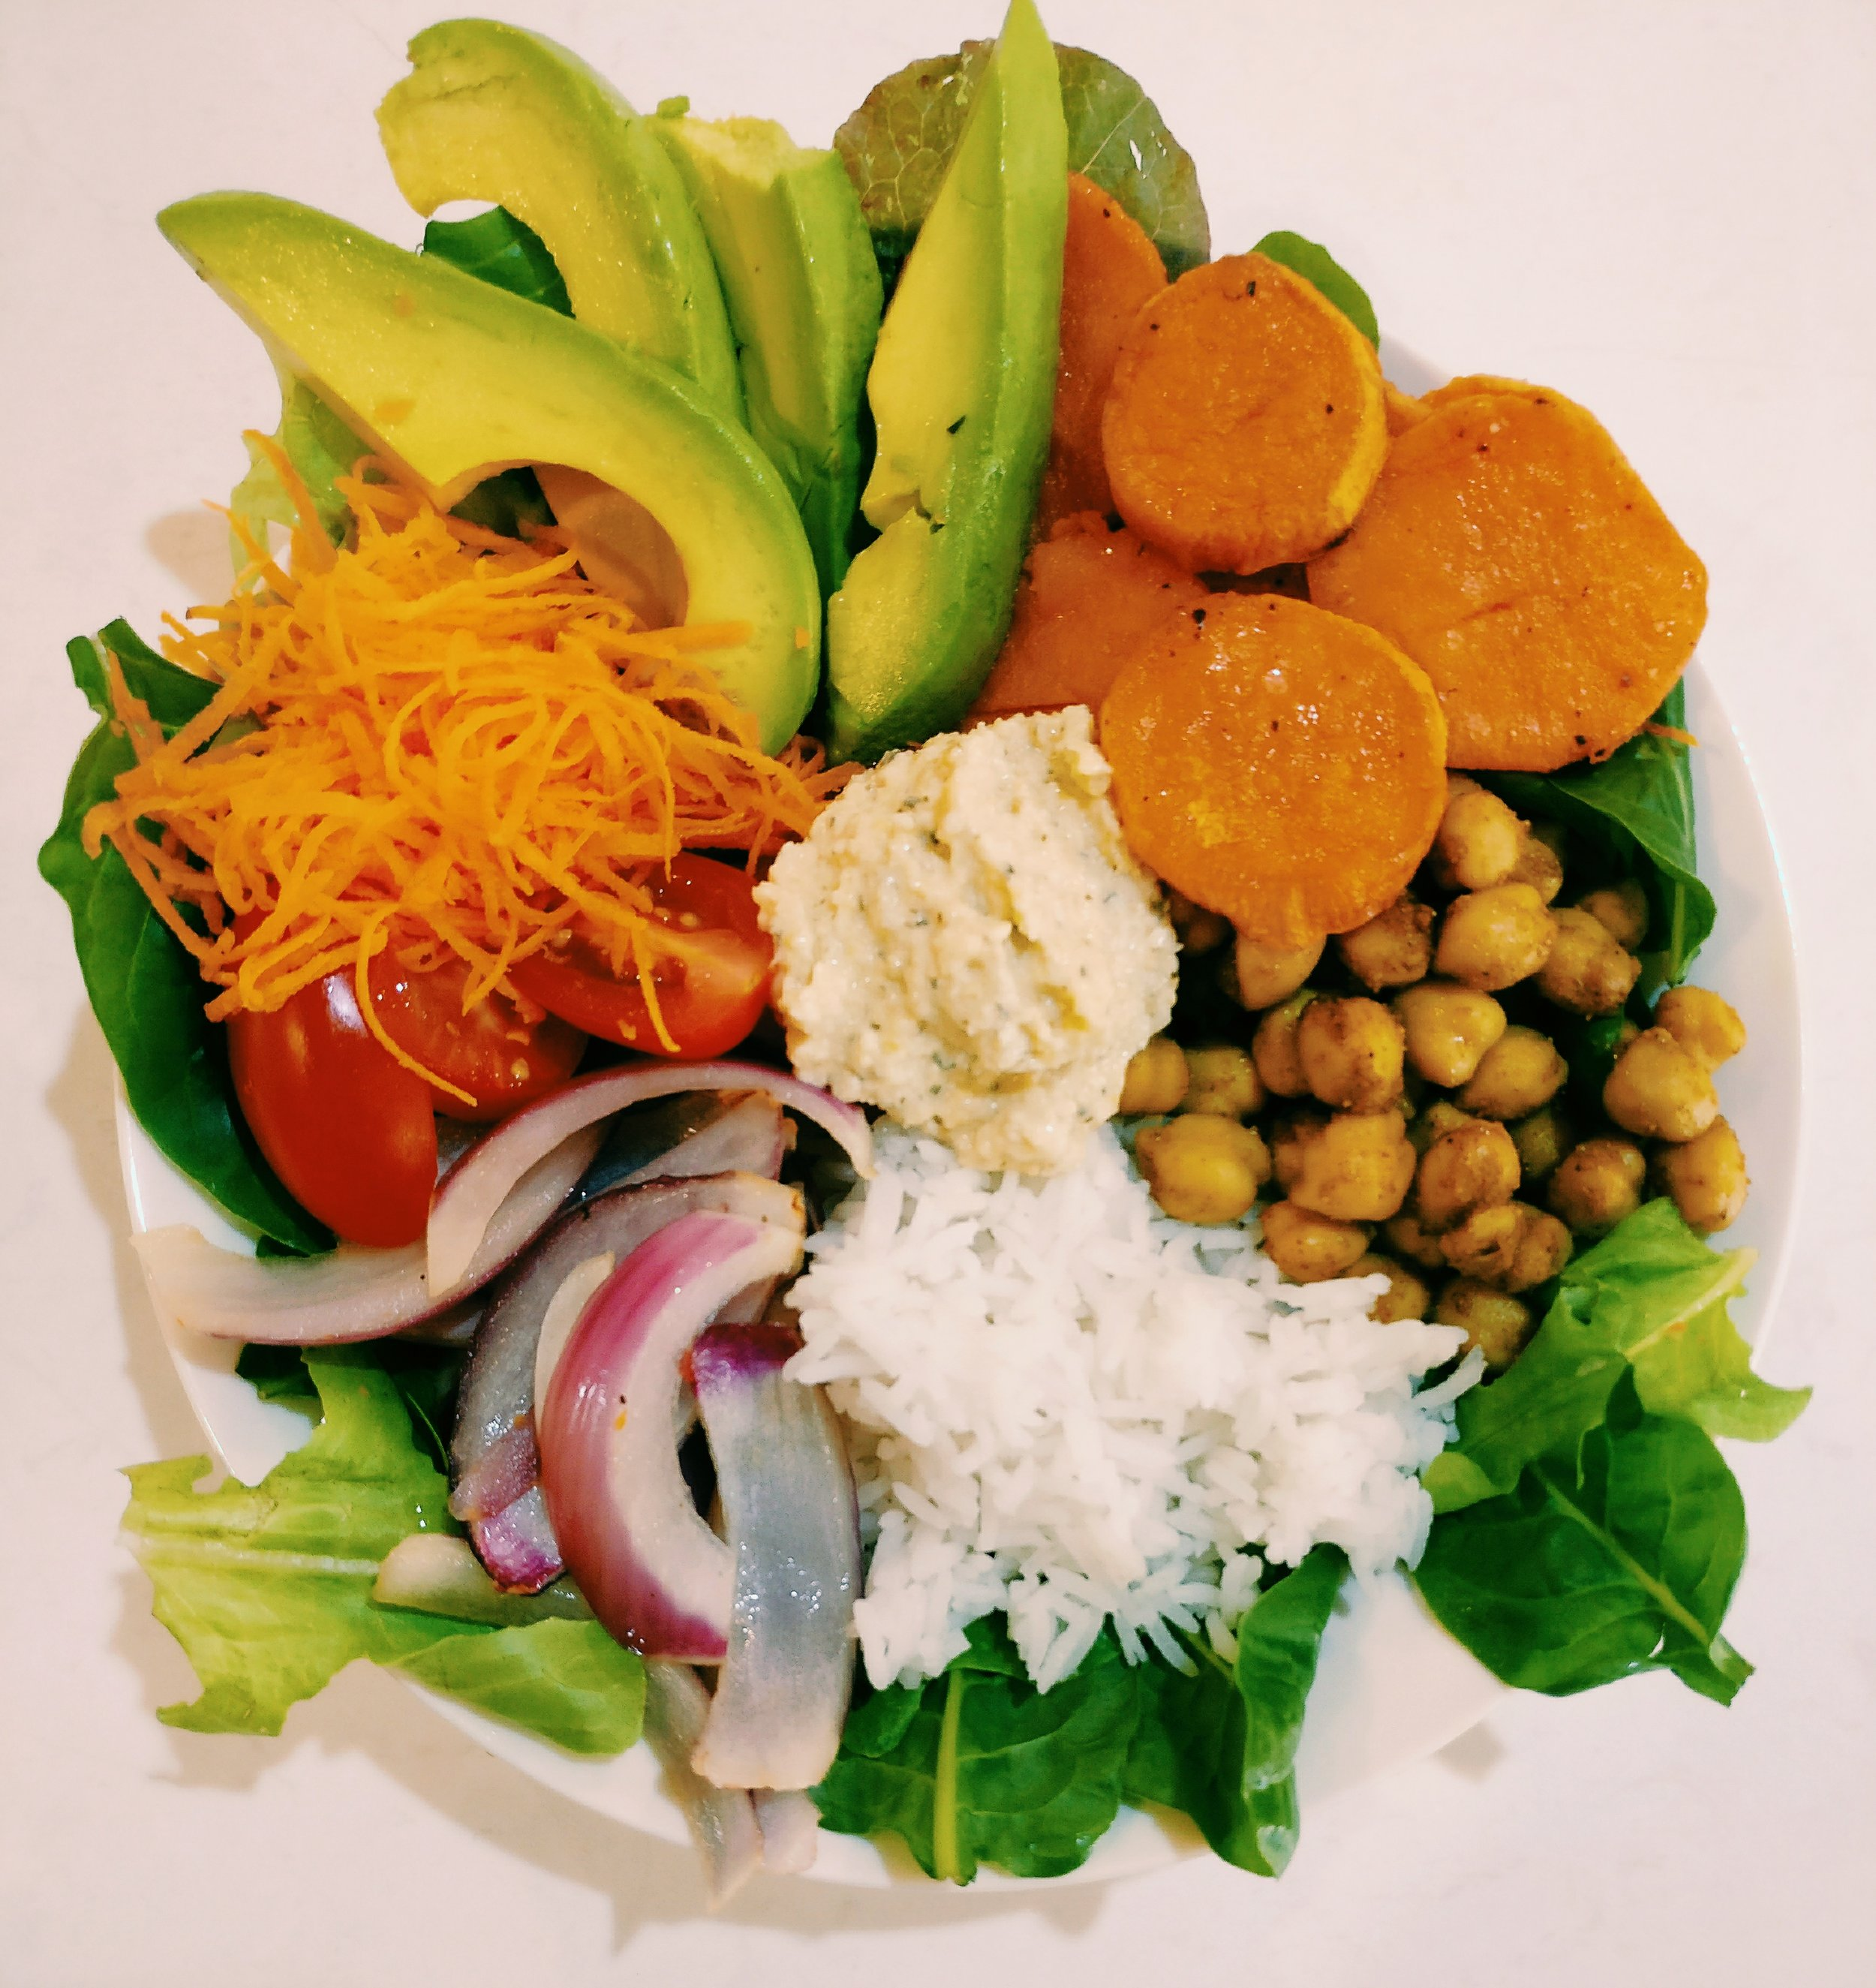 Nourish Bowl - Ingredients1C Rice - Cooked1 Can Chickpeas, Drained and Rinsed1C Lettuce leaves (spinach/rocket preferred)5 Cherry Tomatoes - Halved1 Carrot - Finely Grated1/2 Avocado - Sliced1 Kumara1 Red Onion - Sliced2T Coconut Oil1-2t Curry Powder2t HummusSaltPepperMethod1. Coat the Kumara & Red Onion in 1T Coconut oil, salt & pepper and roast in the oven for 30-35 mins at 180 (the onion won't take as long as the Kumara)2. In a frying pan, melt 1T of Coconut oil, add the chickpeas and toss to coat, add 1-2t of curry powder and toss to coat, heat through for 1-2- minutes3. Cook the rice according to packet directionsAssemble the Buddha Bowl1. Start by using the lettuce leaves to frame the bowl, scatter around the outside of the bowl2. Make small piles of the other ingredients around the bowl and lastly place of big dollop of hummus or dressing in the center of the bowl.3. You can mix and match any similar ingredients and add meat if you prefer